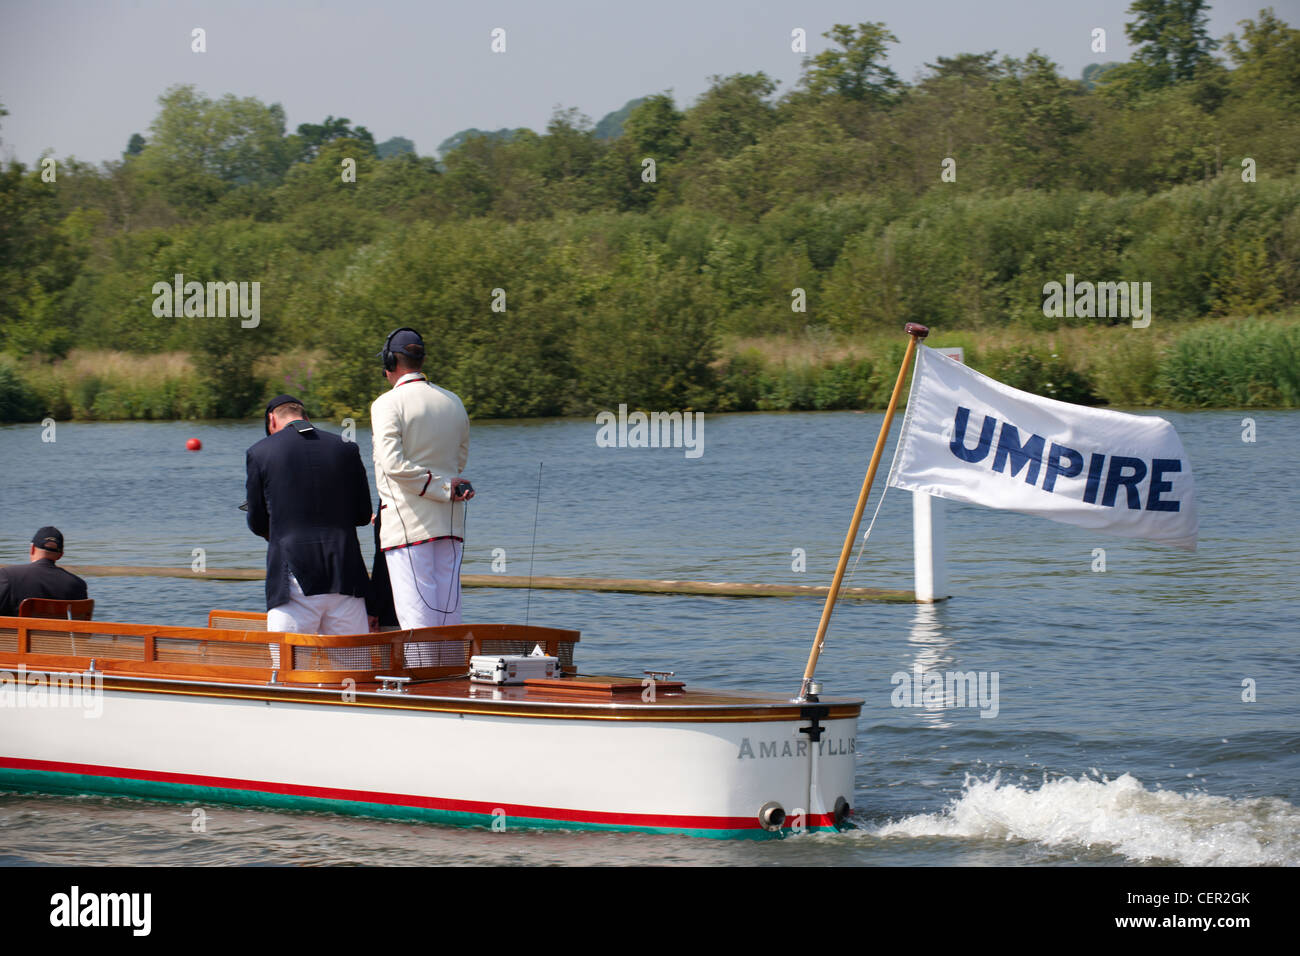 The umpire's boat following a race up the course at the annual Henley Royal Regatta. - Stock Image